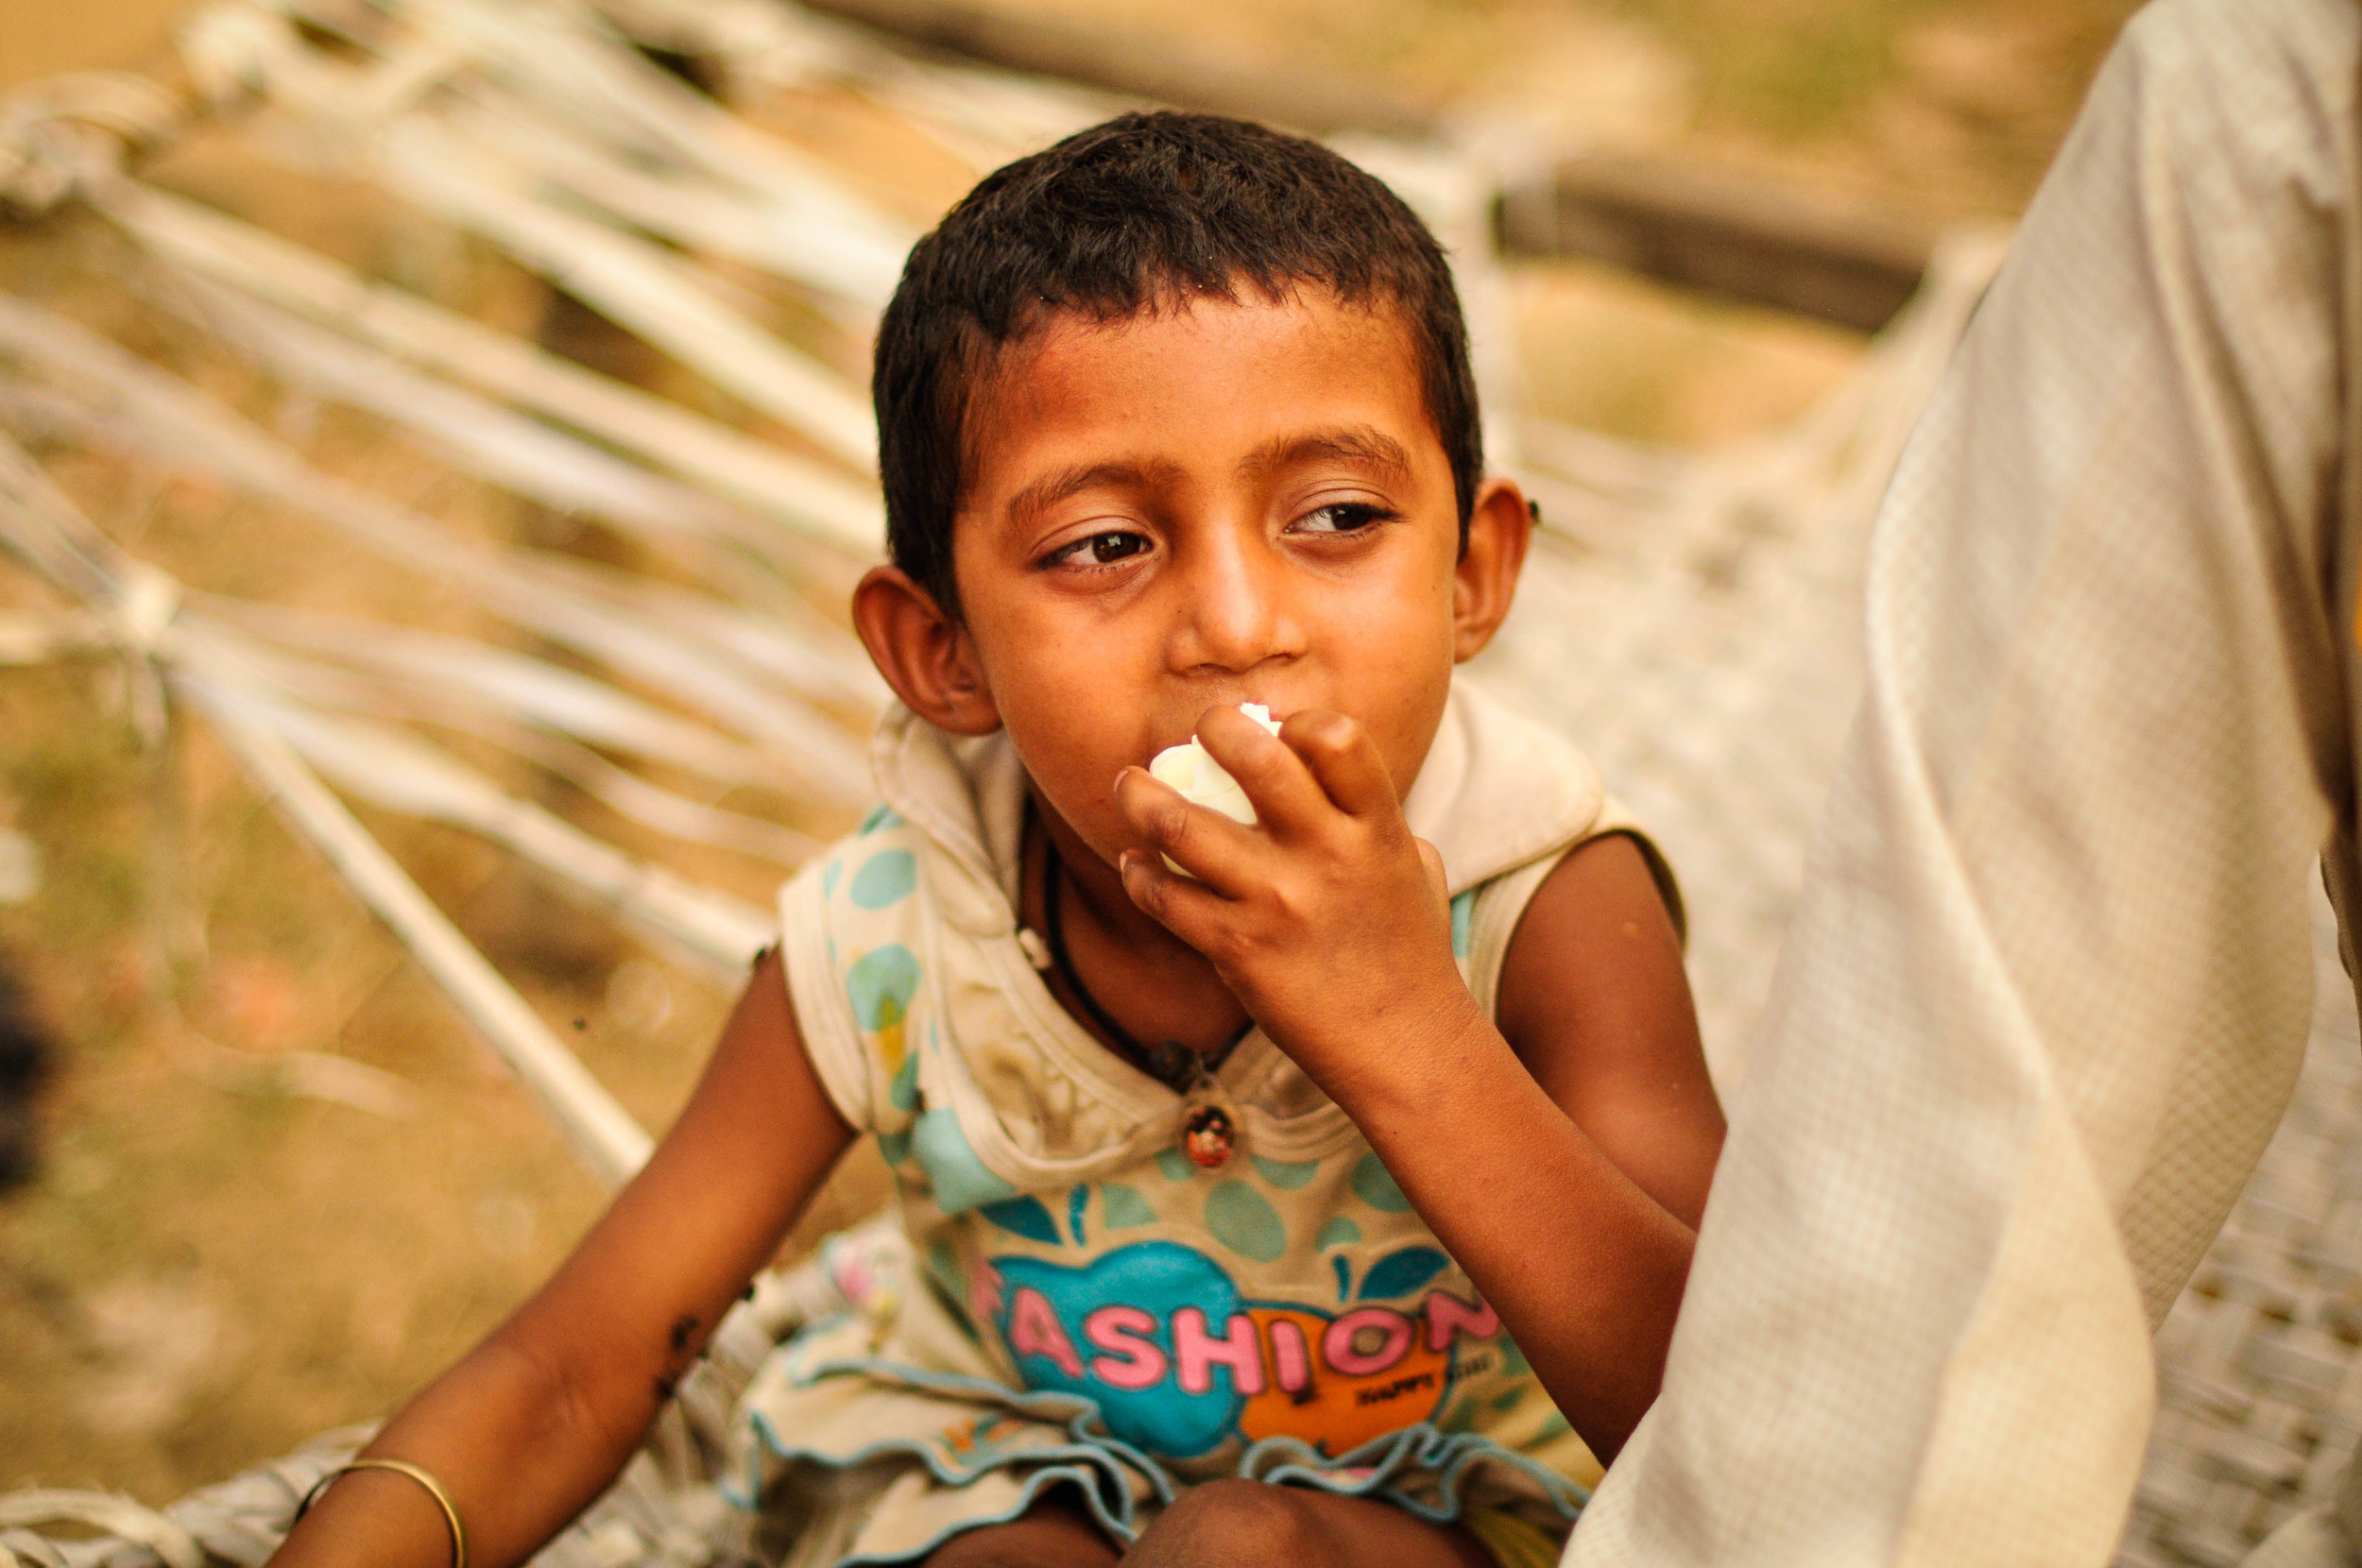 Children are not considered very precious in India---especially girl ones. This little one is paralyzed and does notreceiveenough nutritious food withprotein She's eating an egg we gave her here.